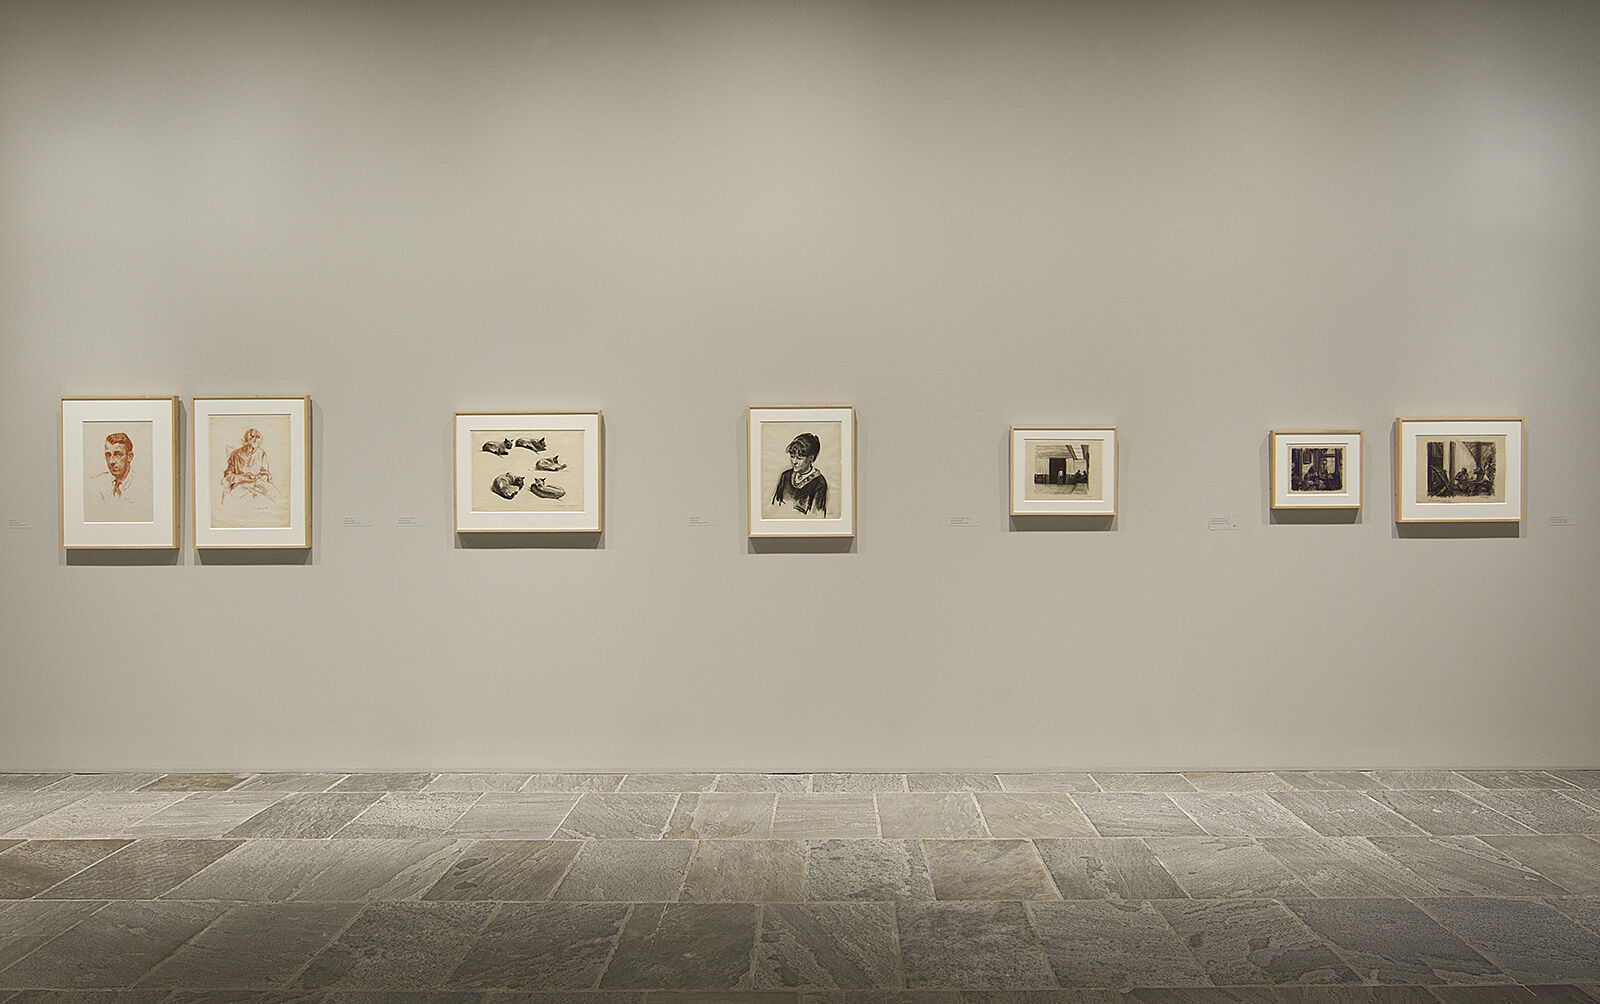 Sketches line the walls of the gallery.